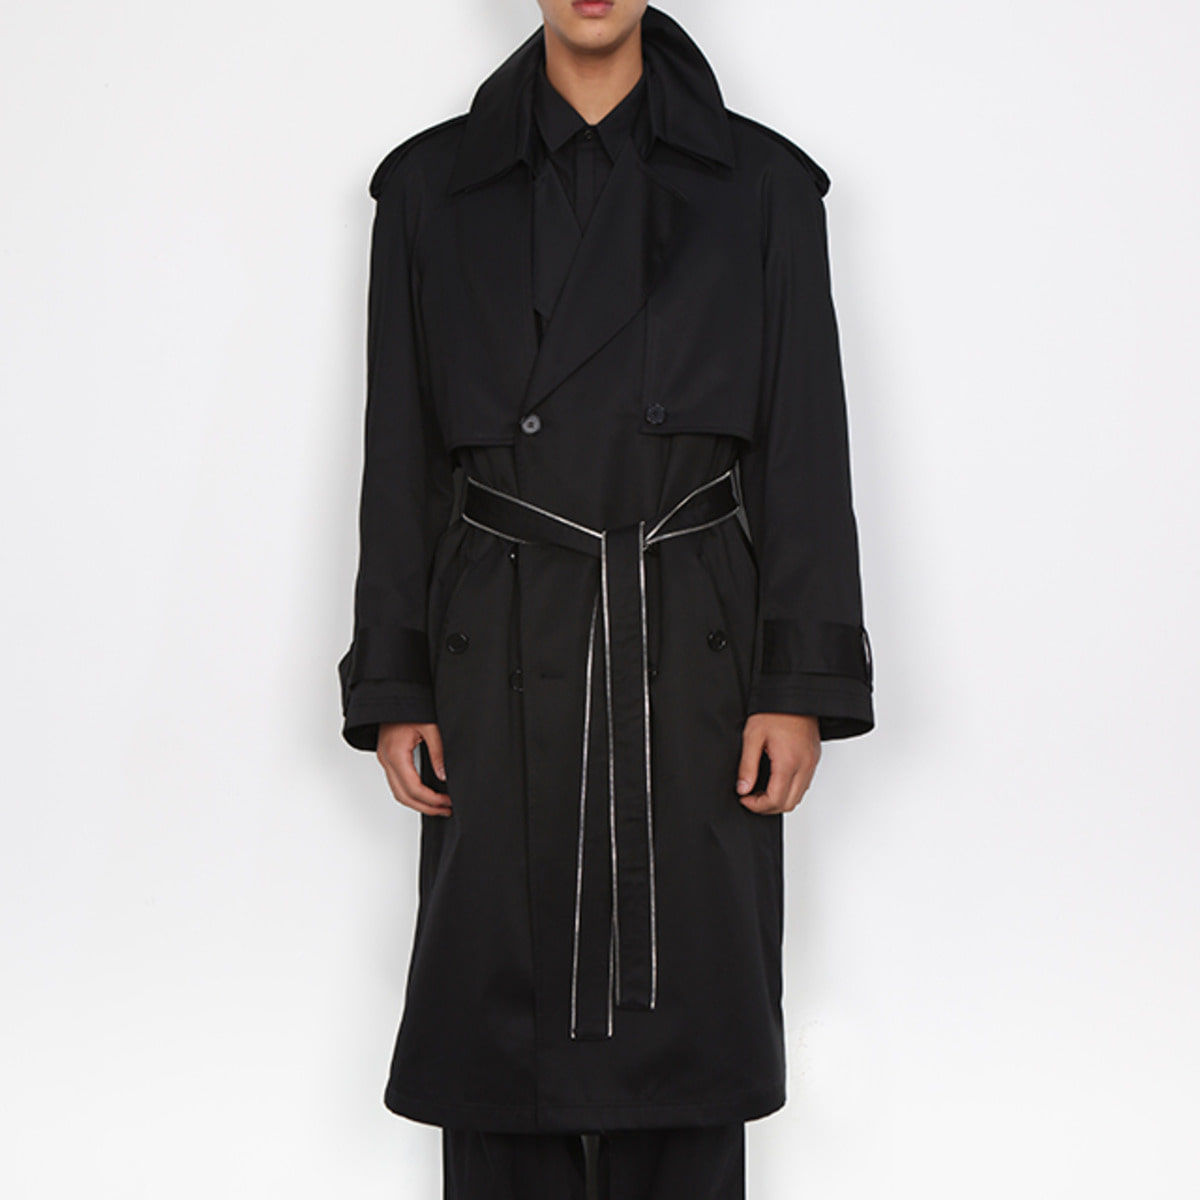 DOUBLE COLLAR TRENCH COAT